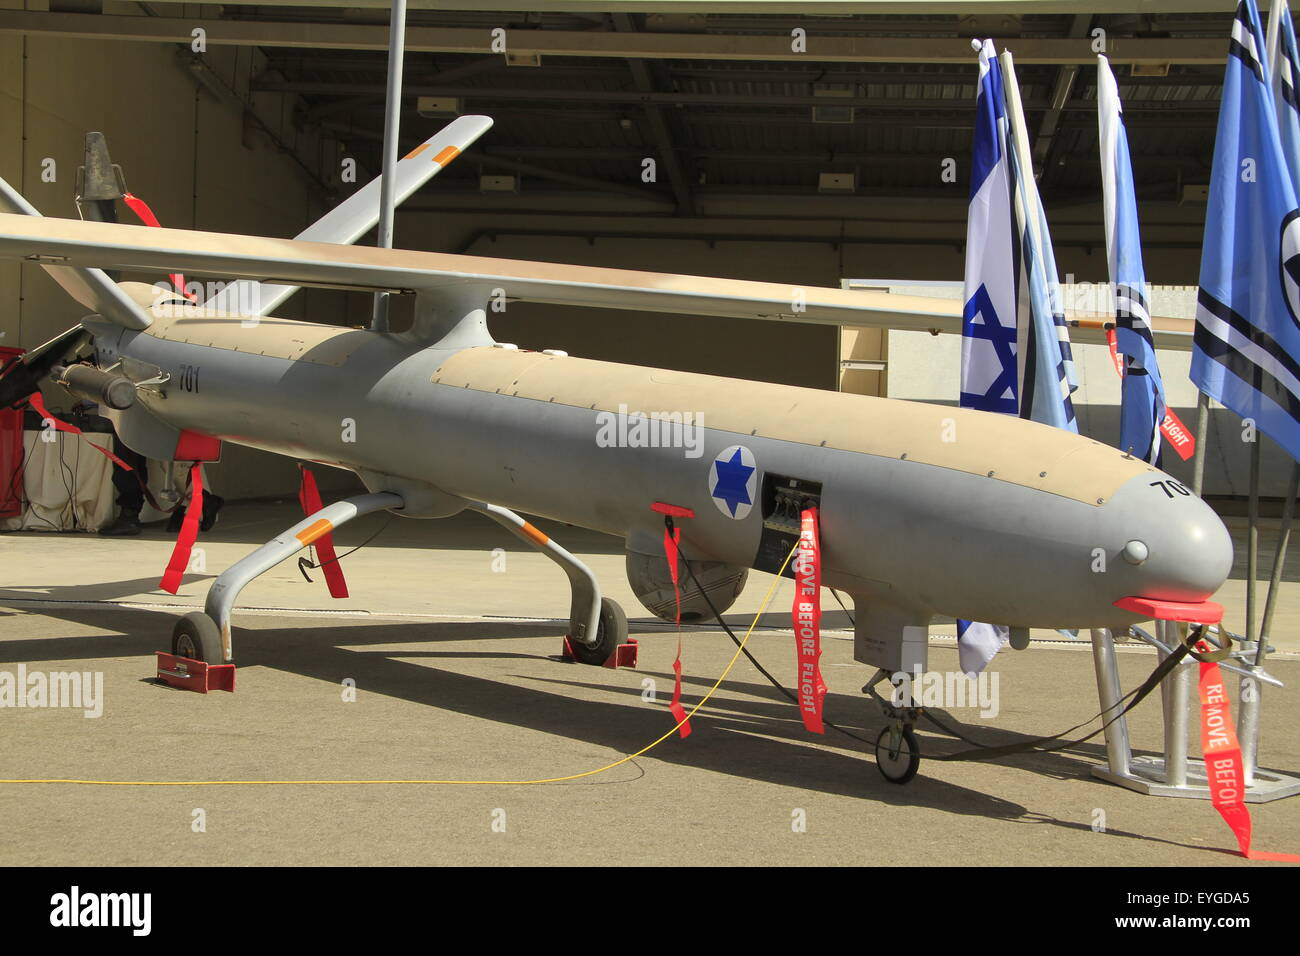 Israeli Made Hermes 450 UAV At Palmachim Air Force Base The Drone By